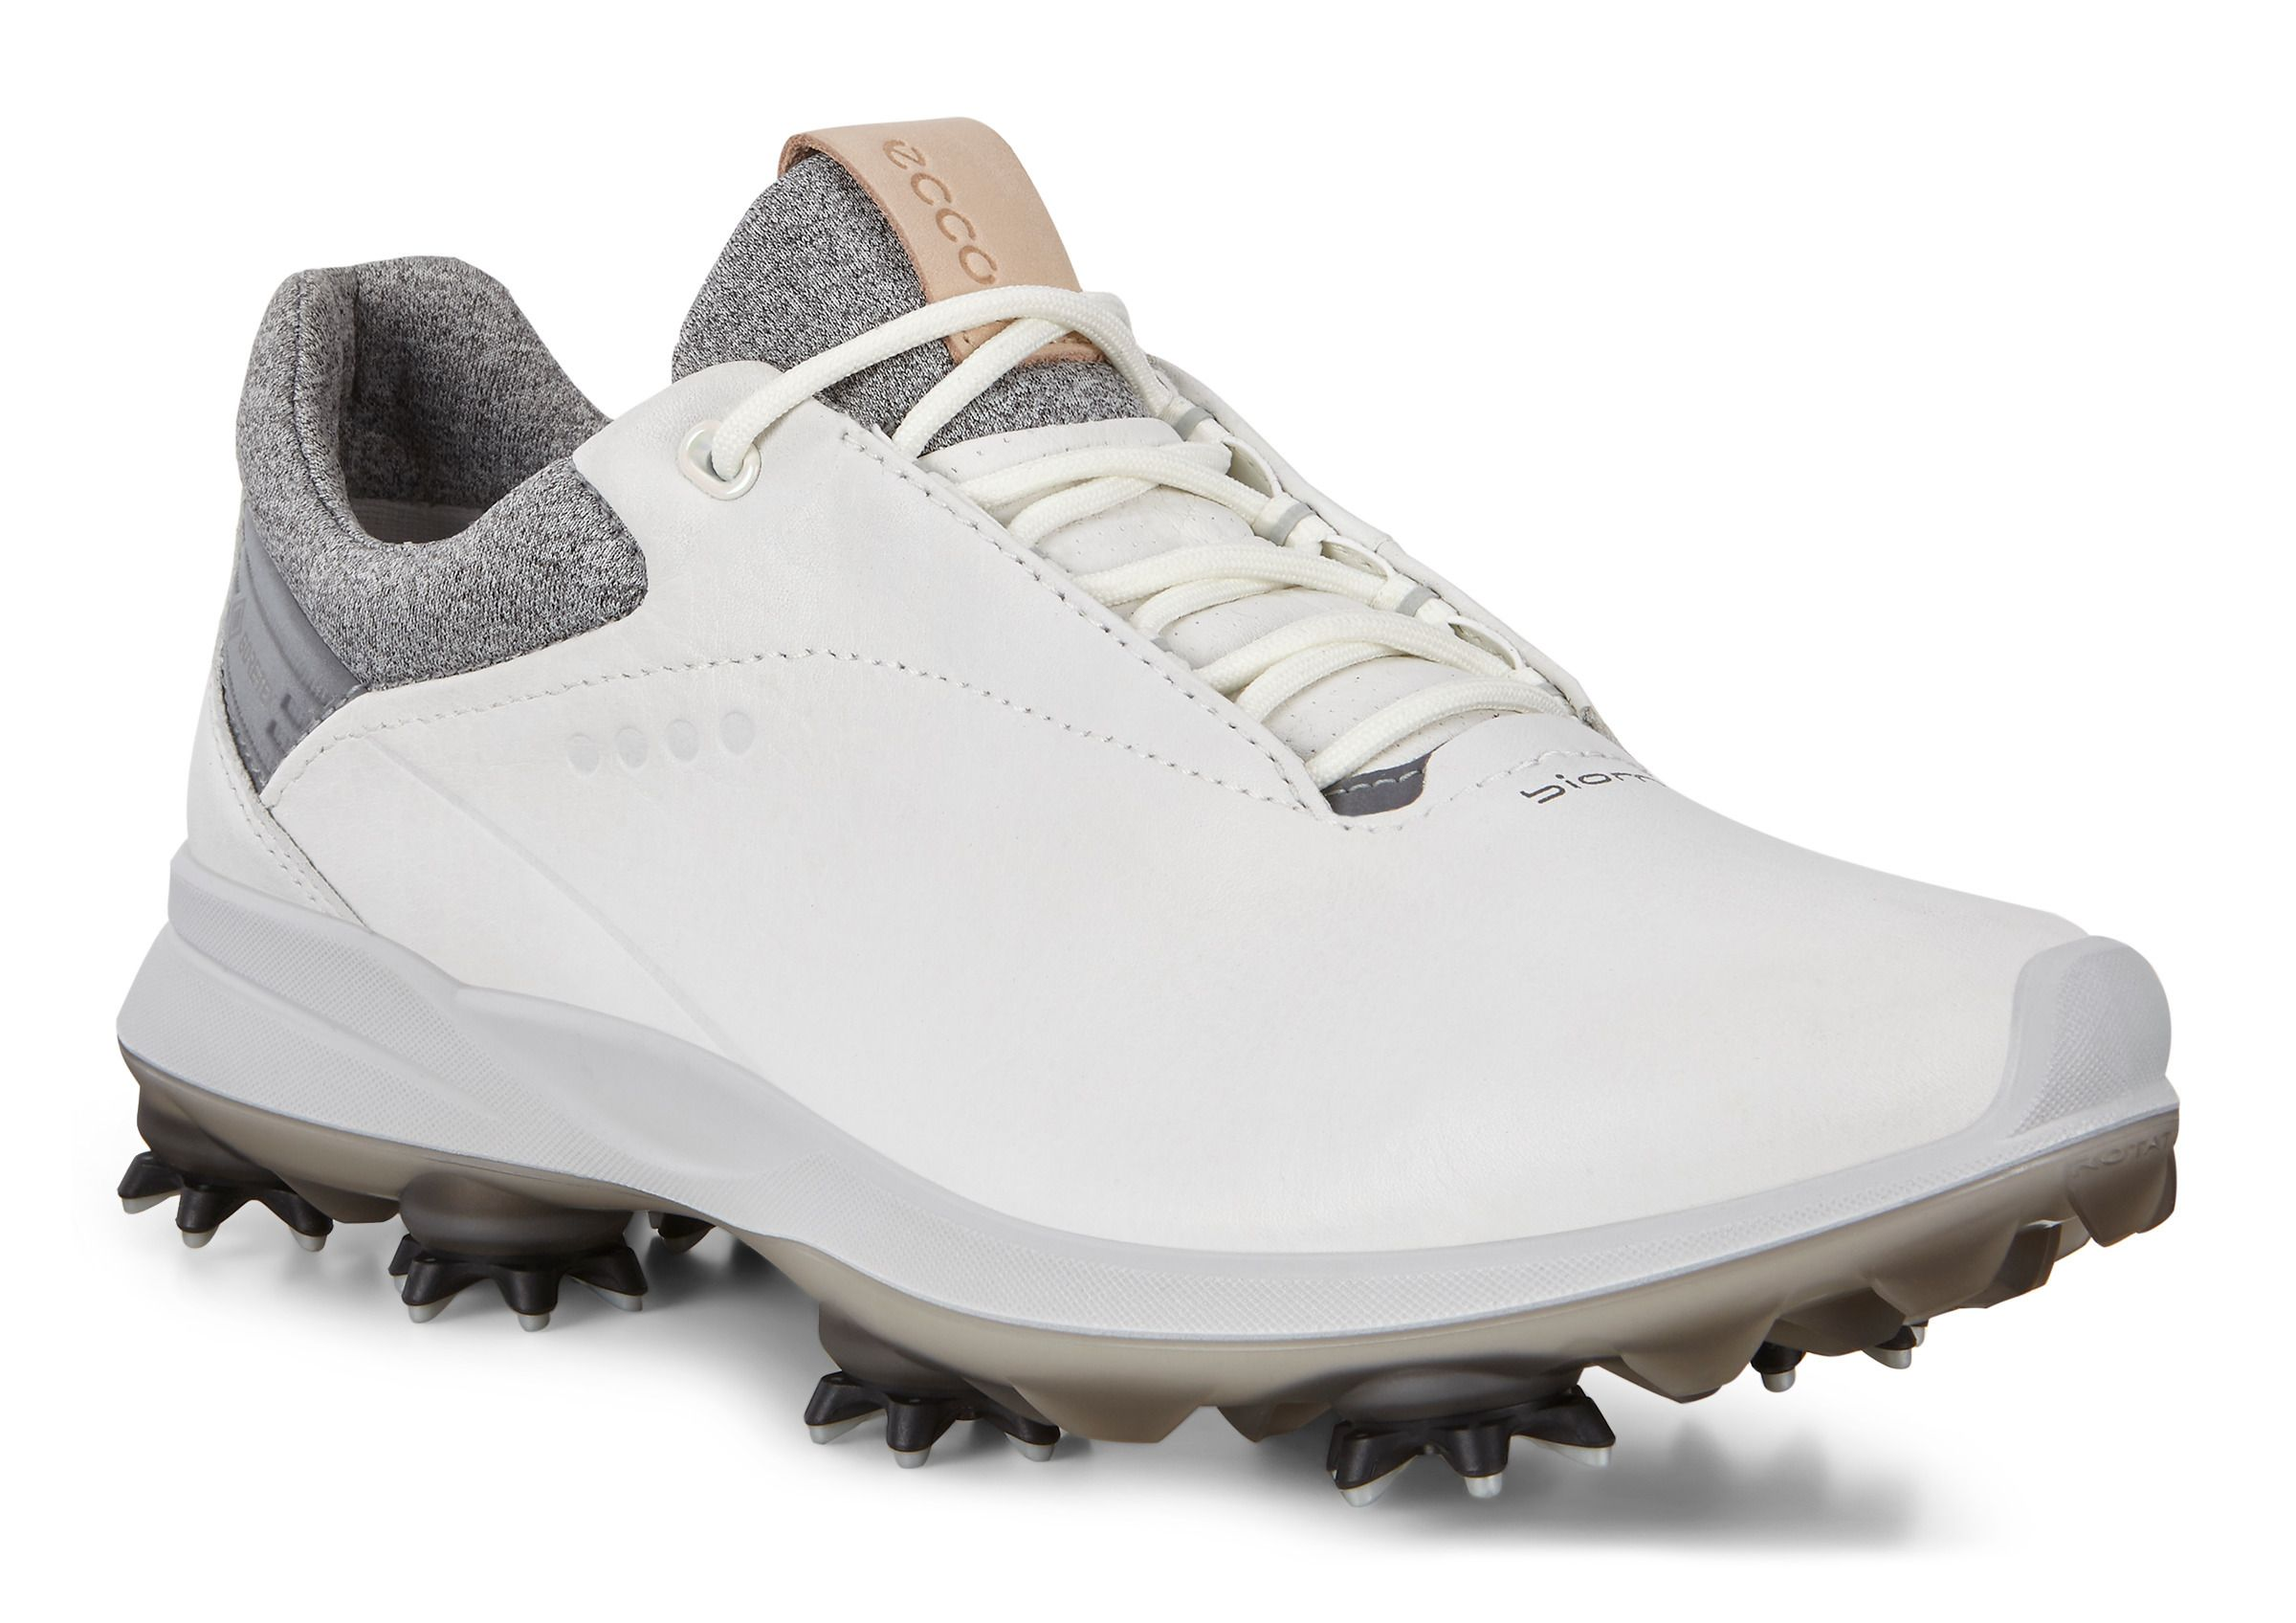 Buy Ecco Womens Golf Shoes for Best Prices Online!